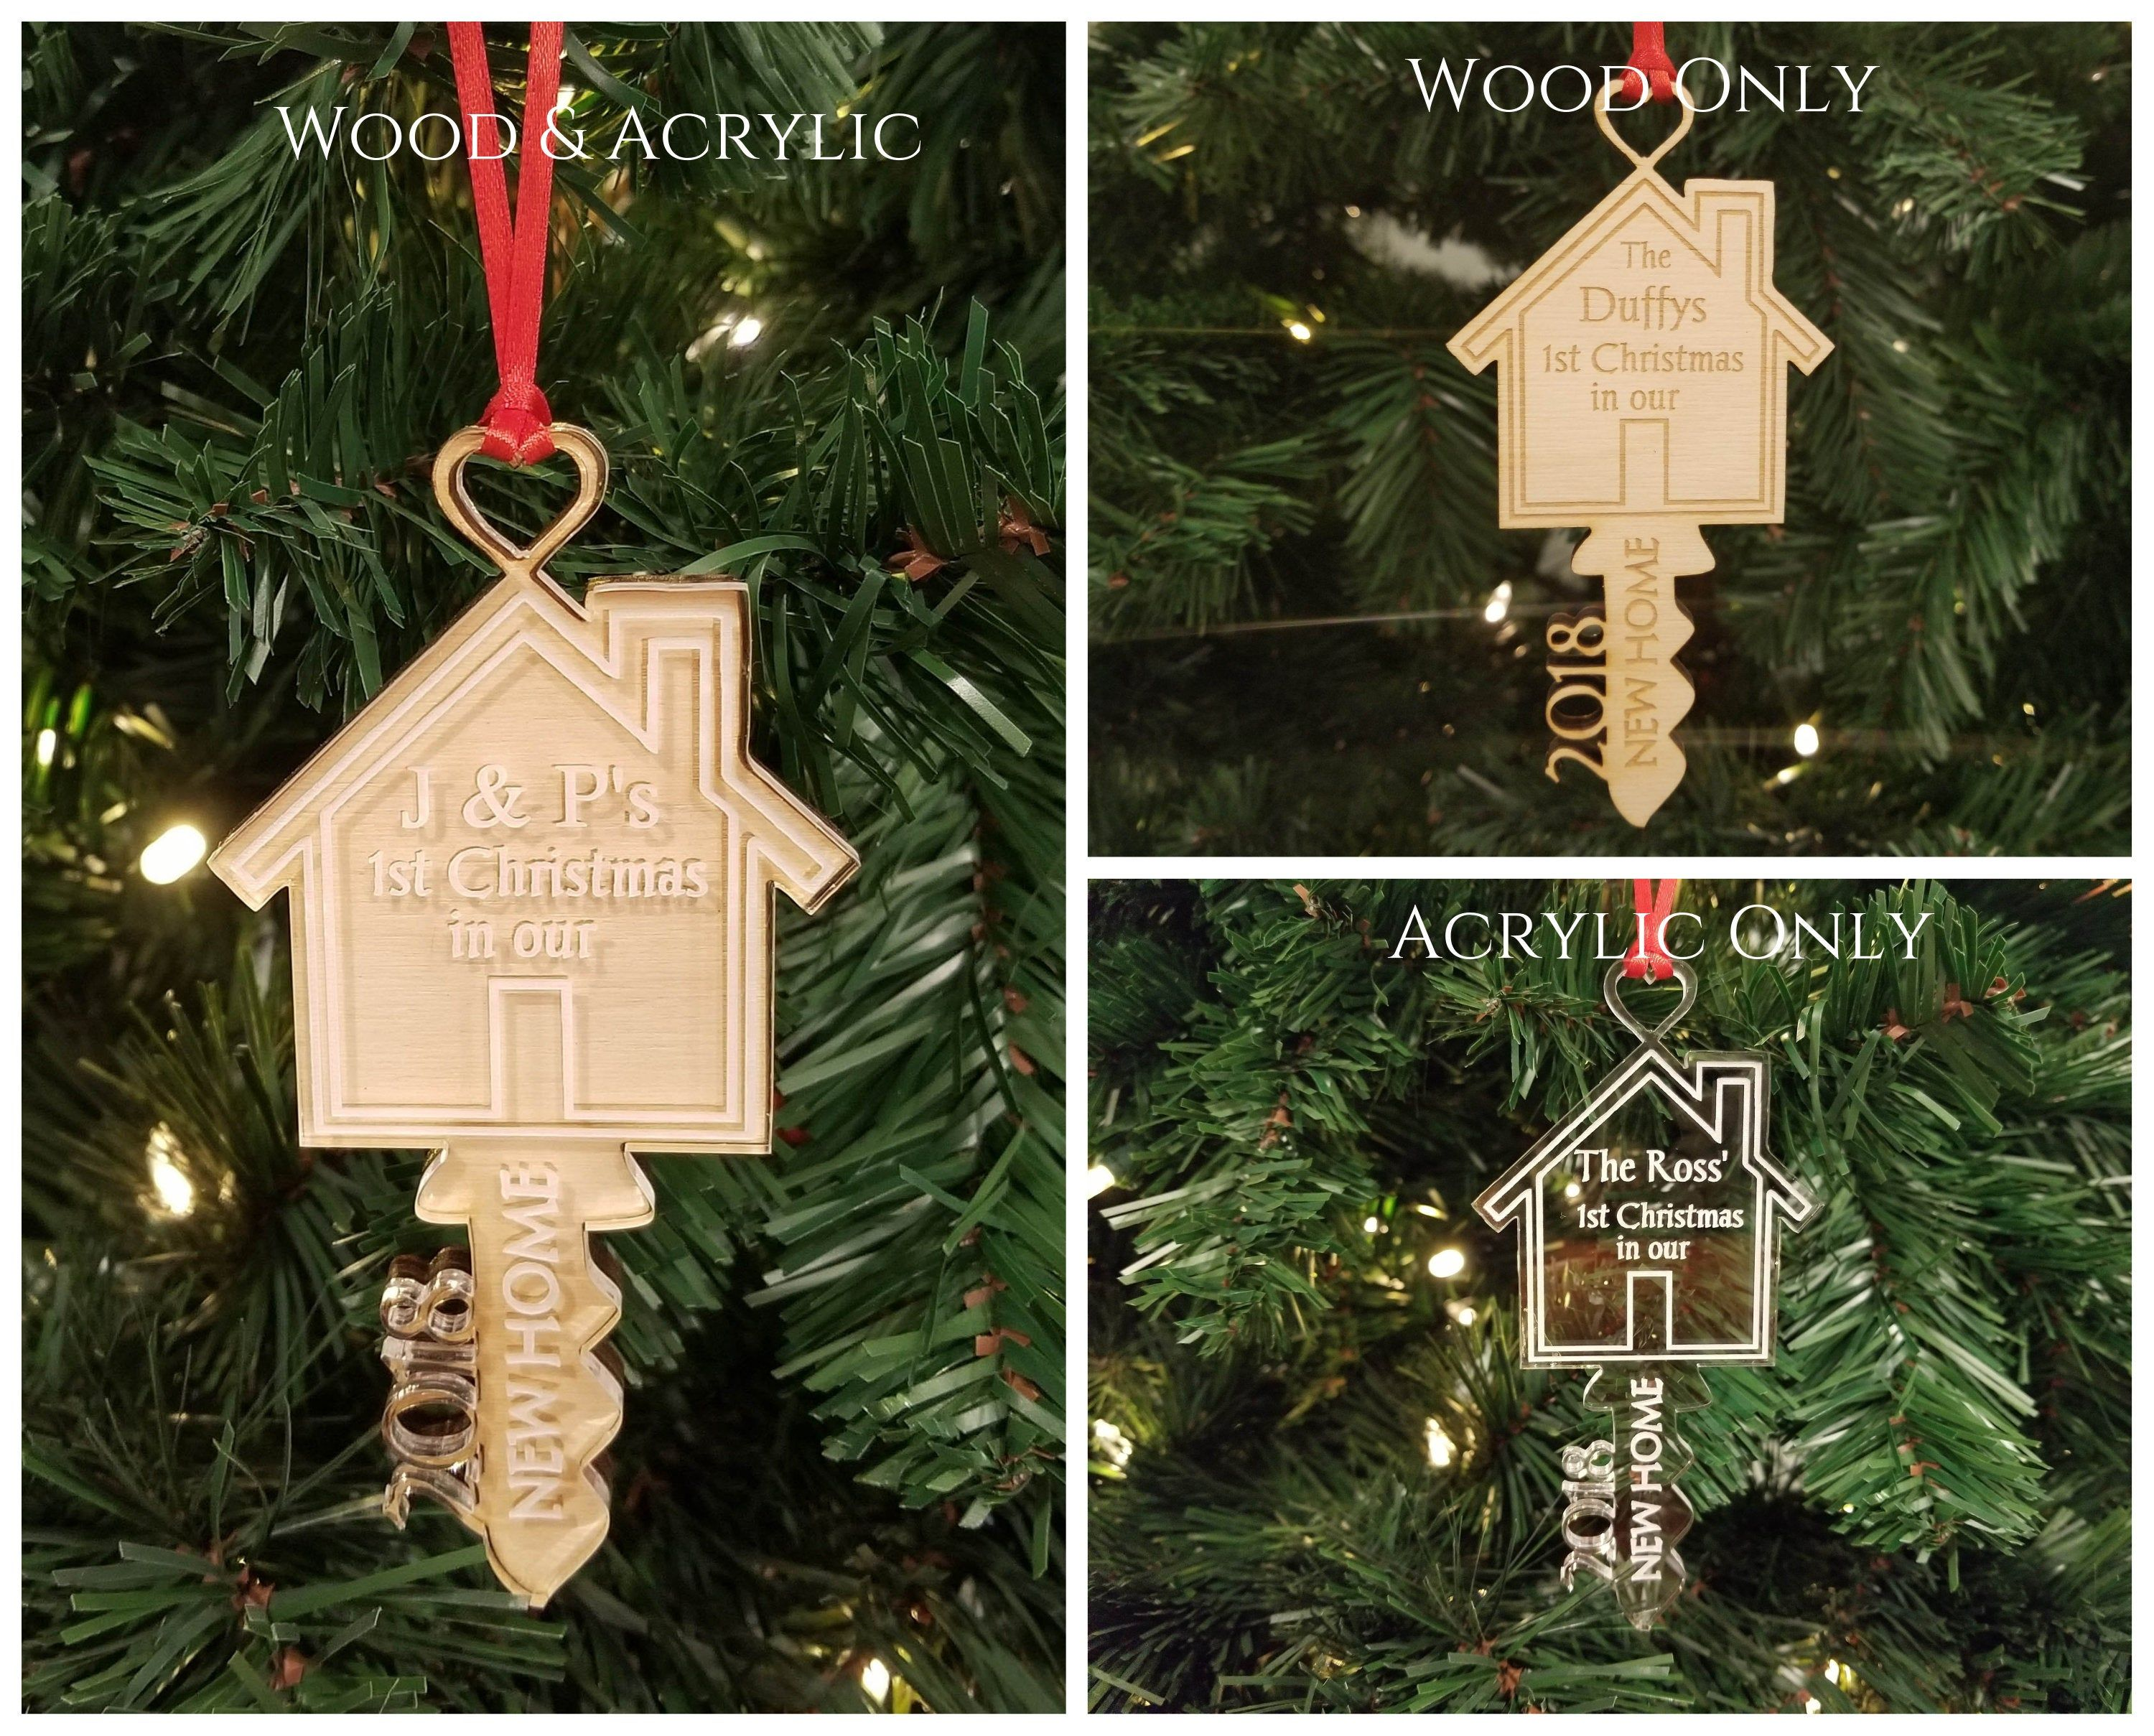 Our New Home Key Ornament New Home Owner Gift Idea Etsy In 2020 Personalized Christmas Ornaments House Ornaments Christmas Ornaments